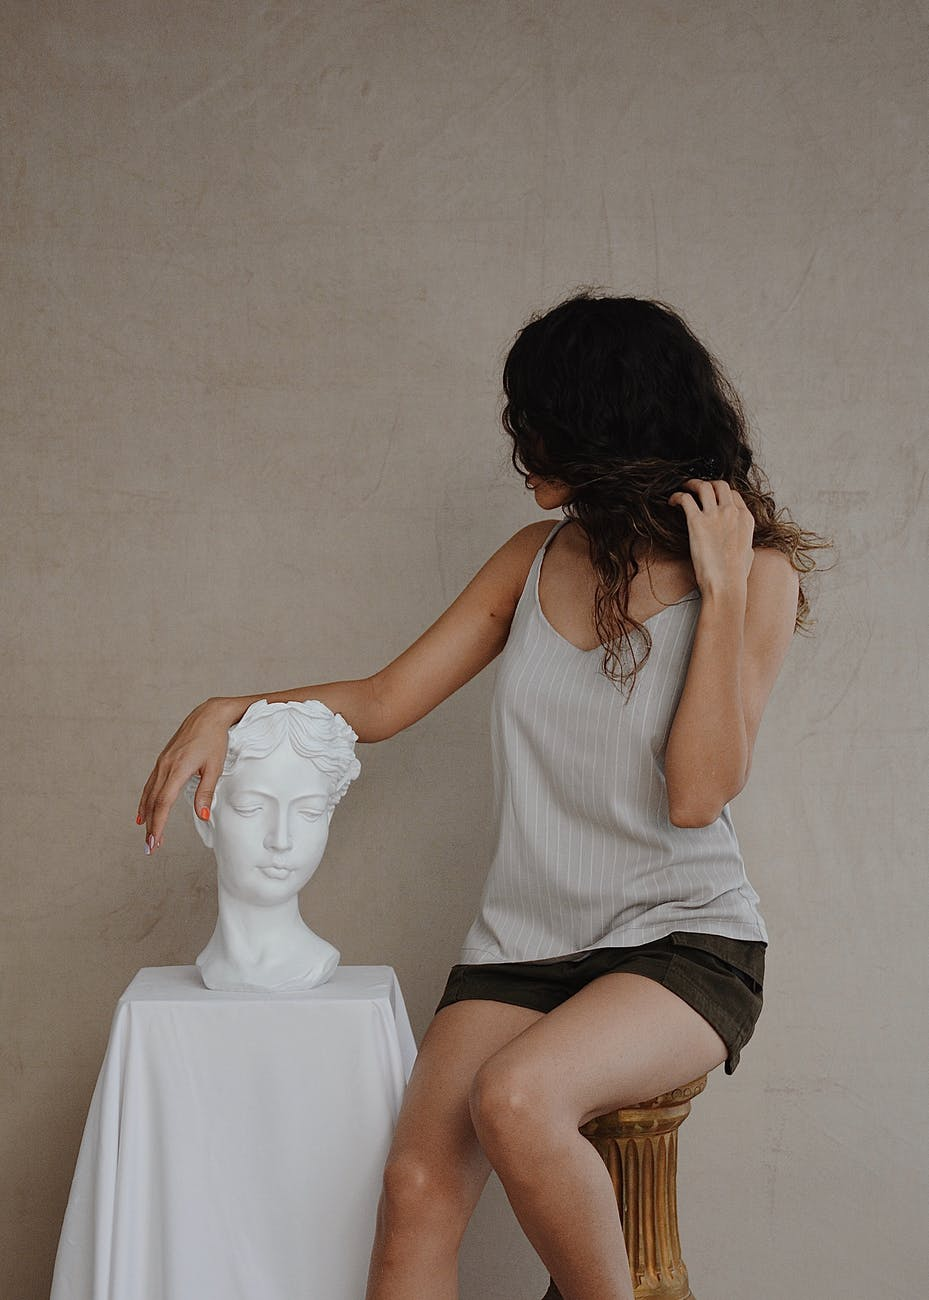 anonymous woman in trendy outfit near stone bust